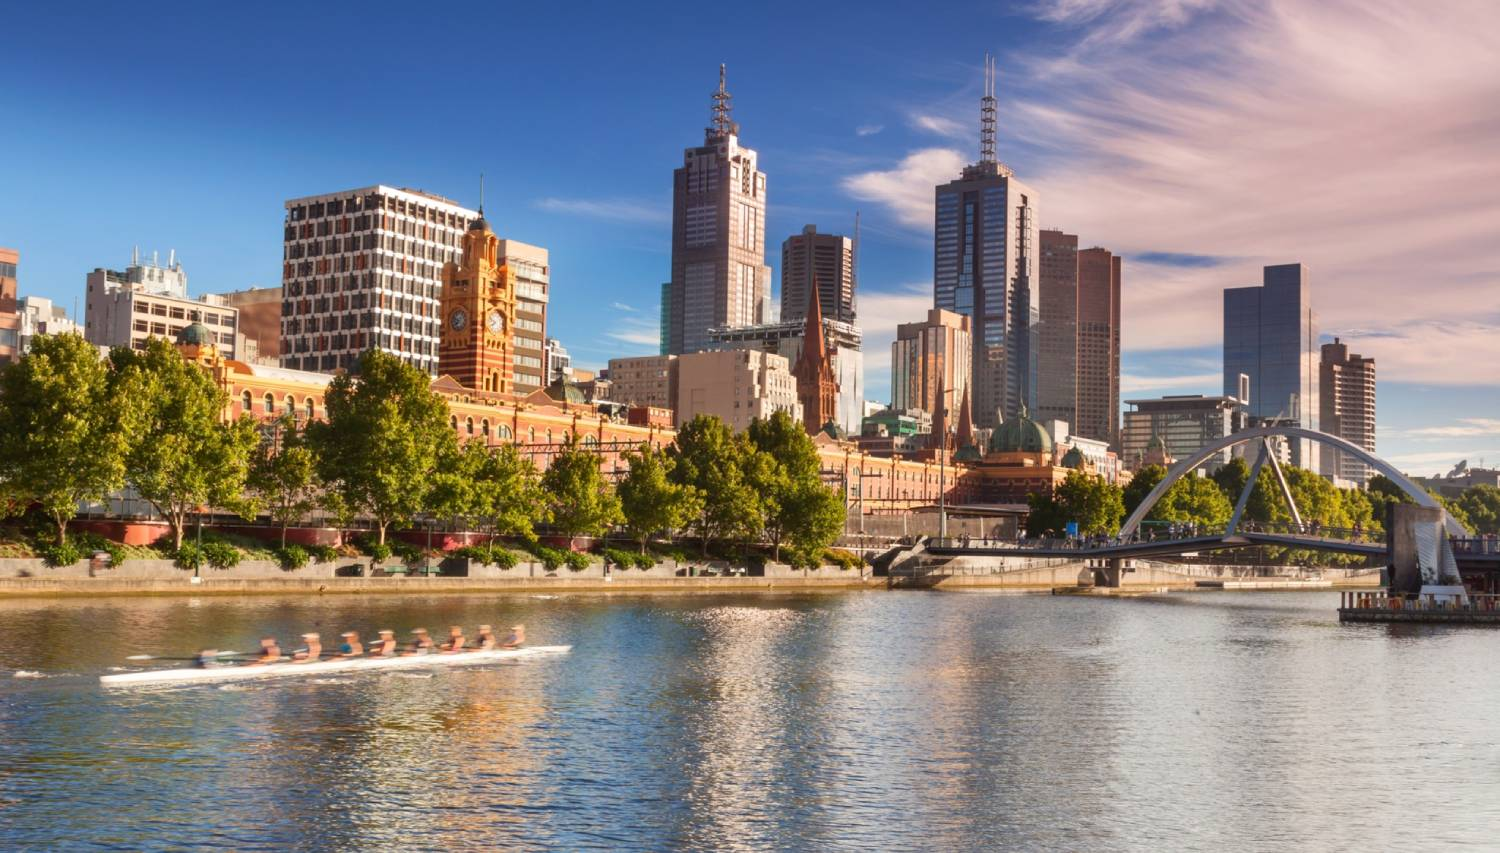 Yarra River - Things To Do In Melbourne